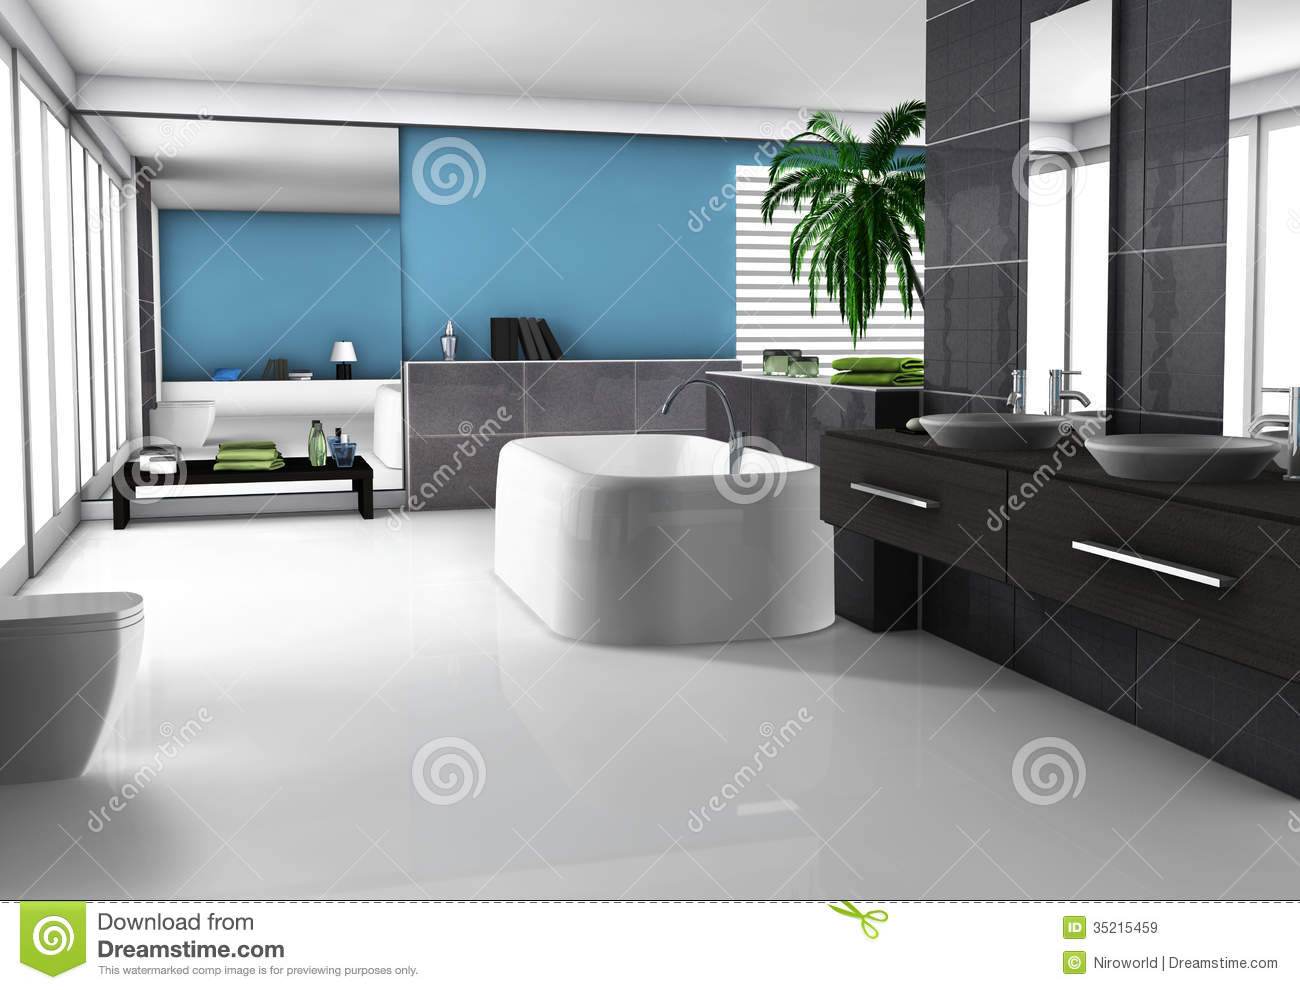 Bathroom royalty free stock images image 35215459 for Modern furniture names